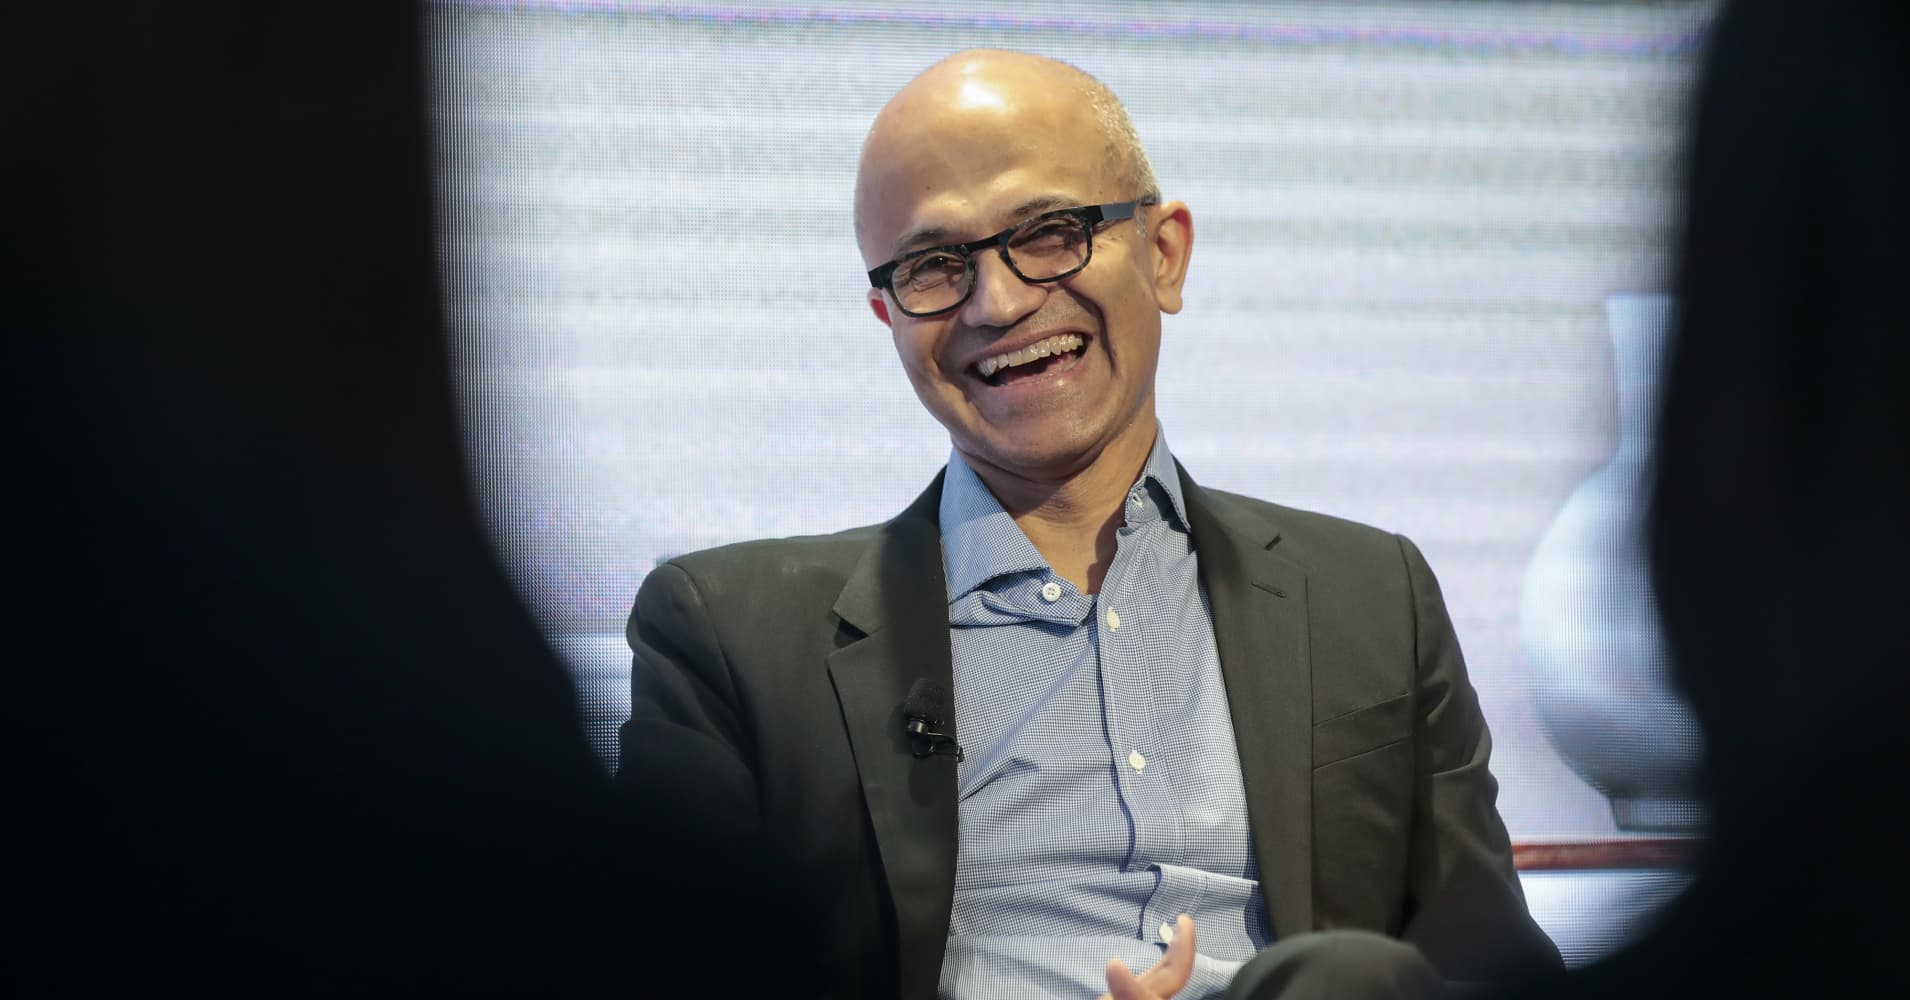 Microsoft hits $1 trillion market cap for the first time as stock jumps on earnings beat